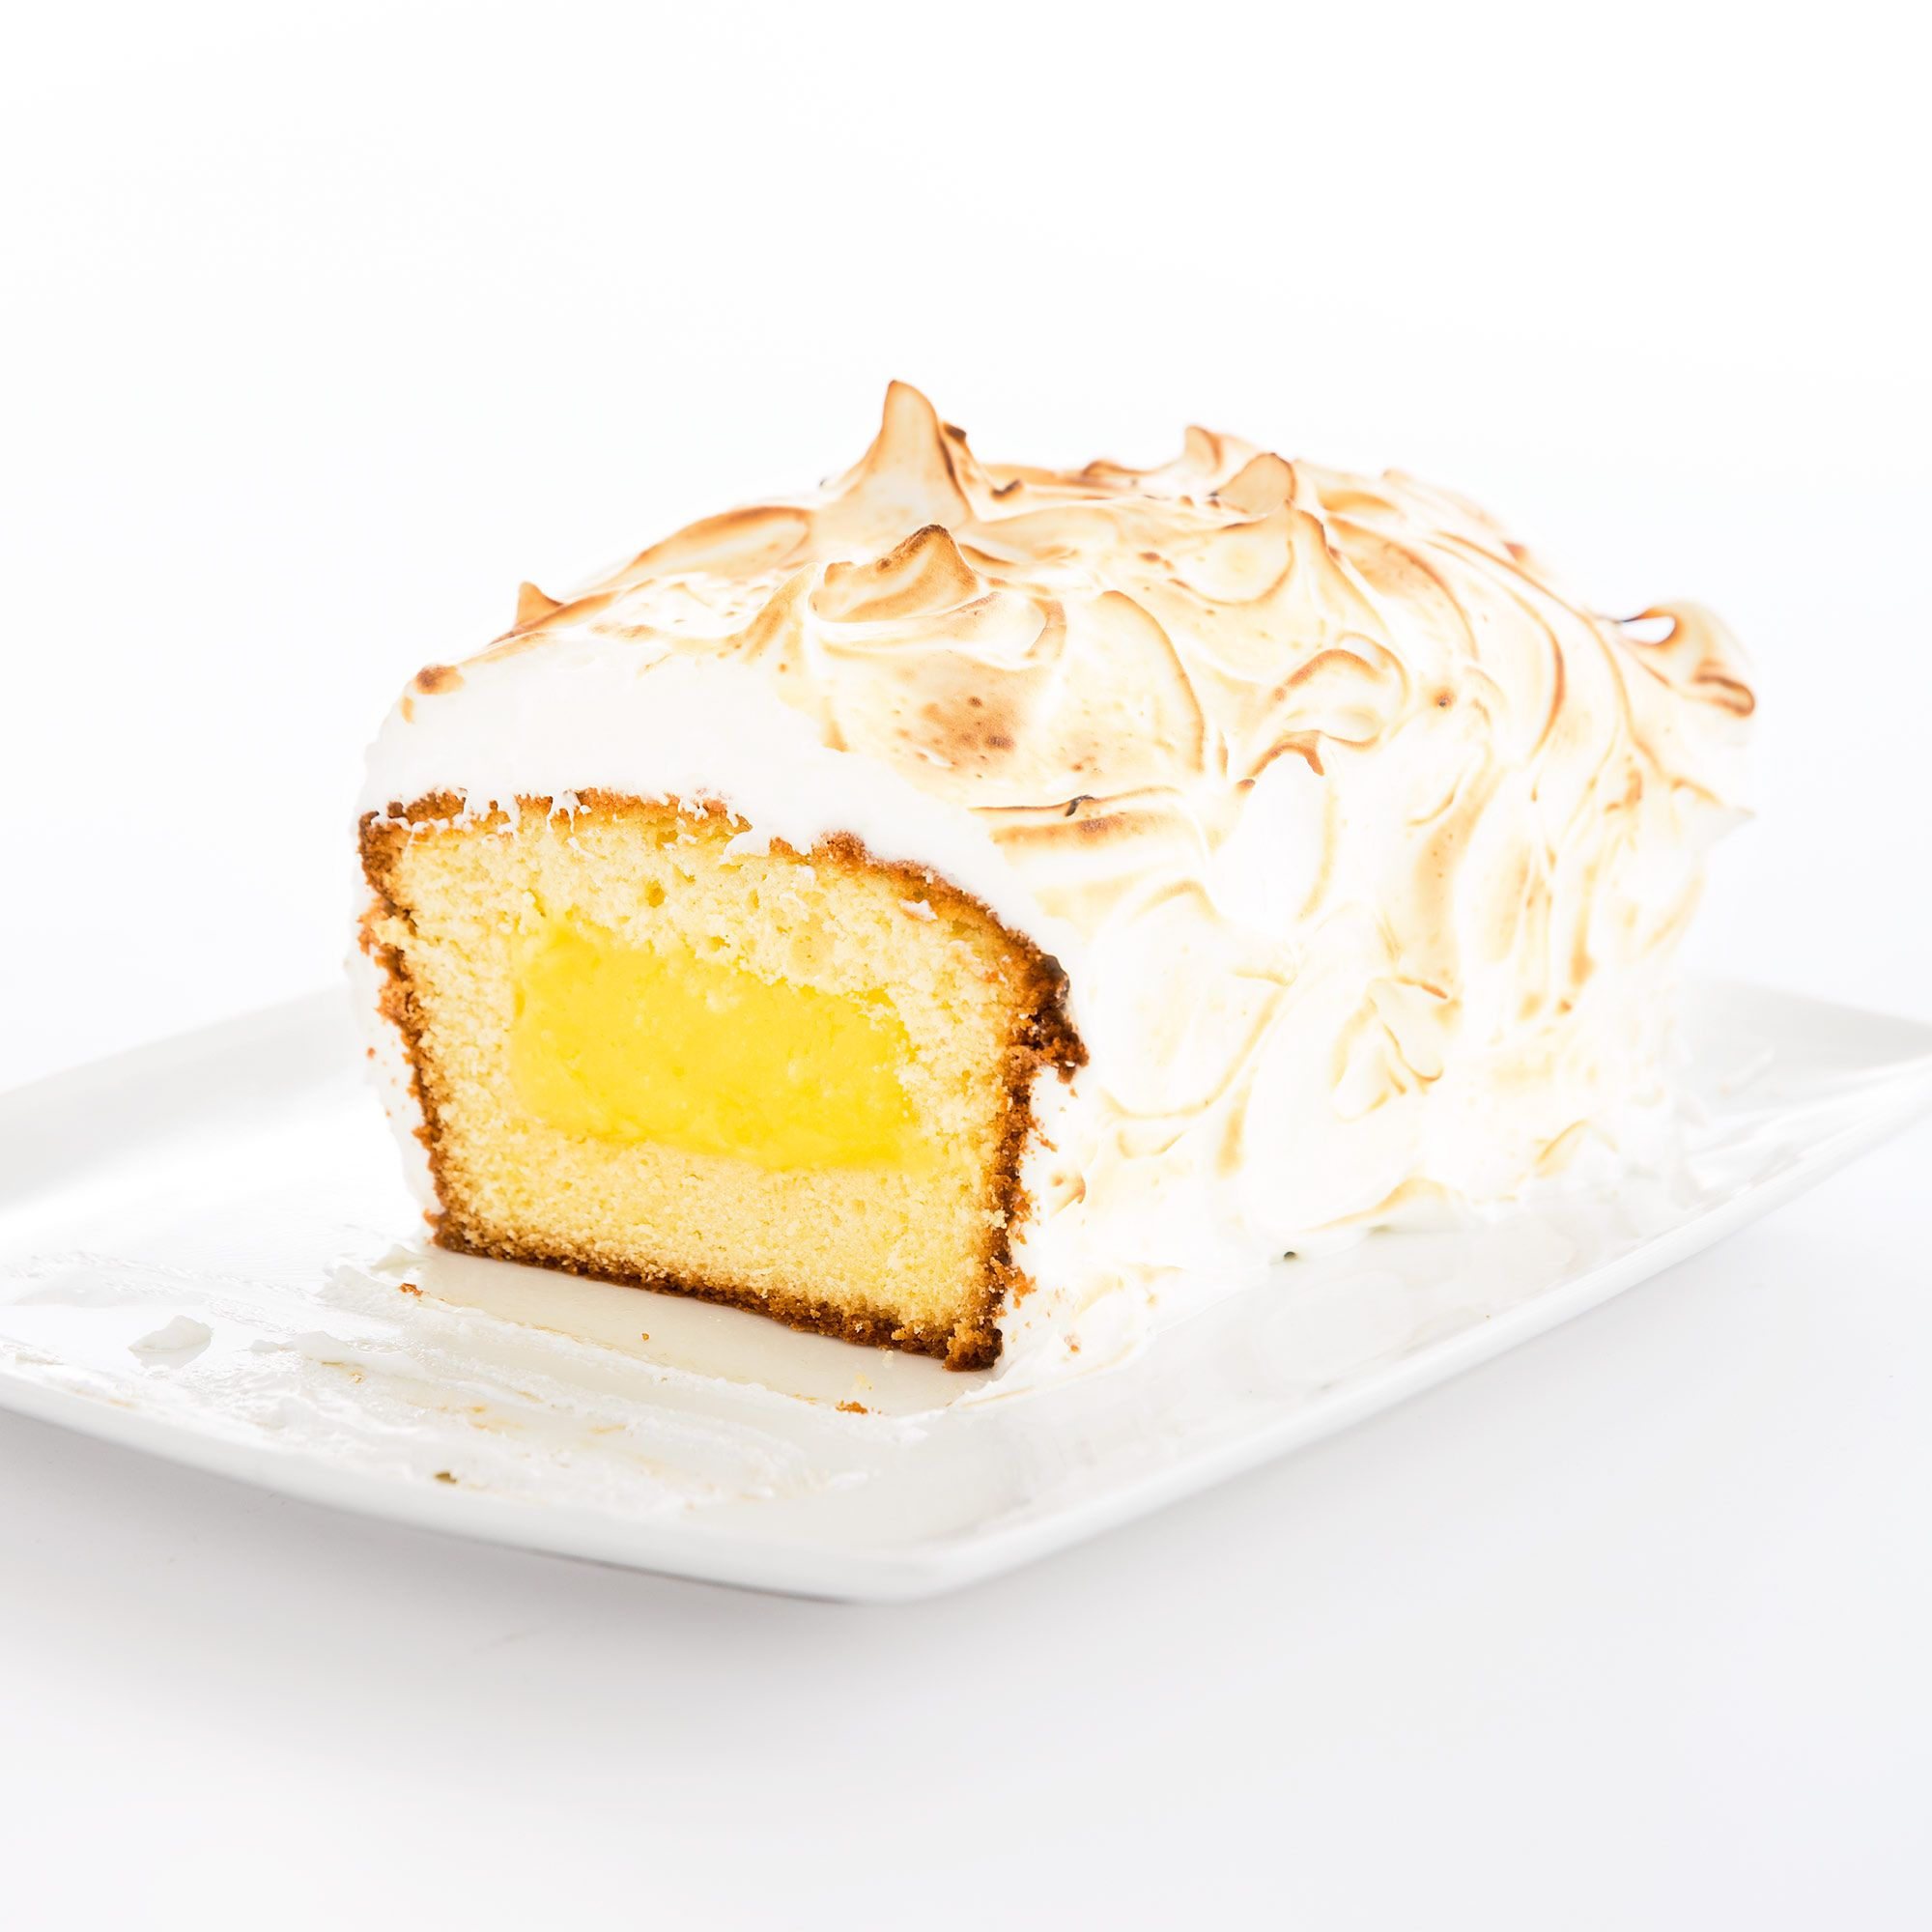 With bright homemade lemon curd and delicate meringue peaks, this ...